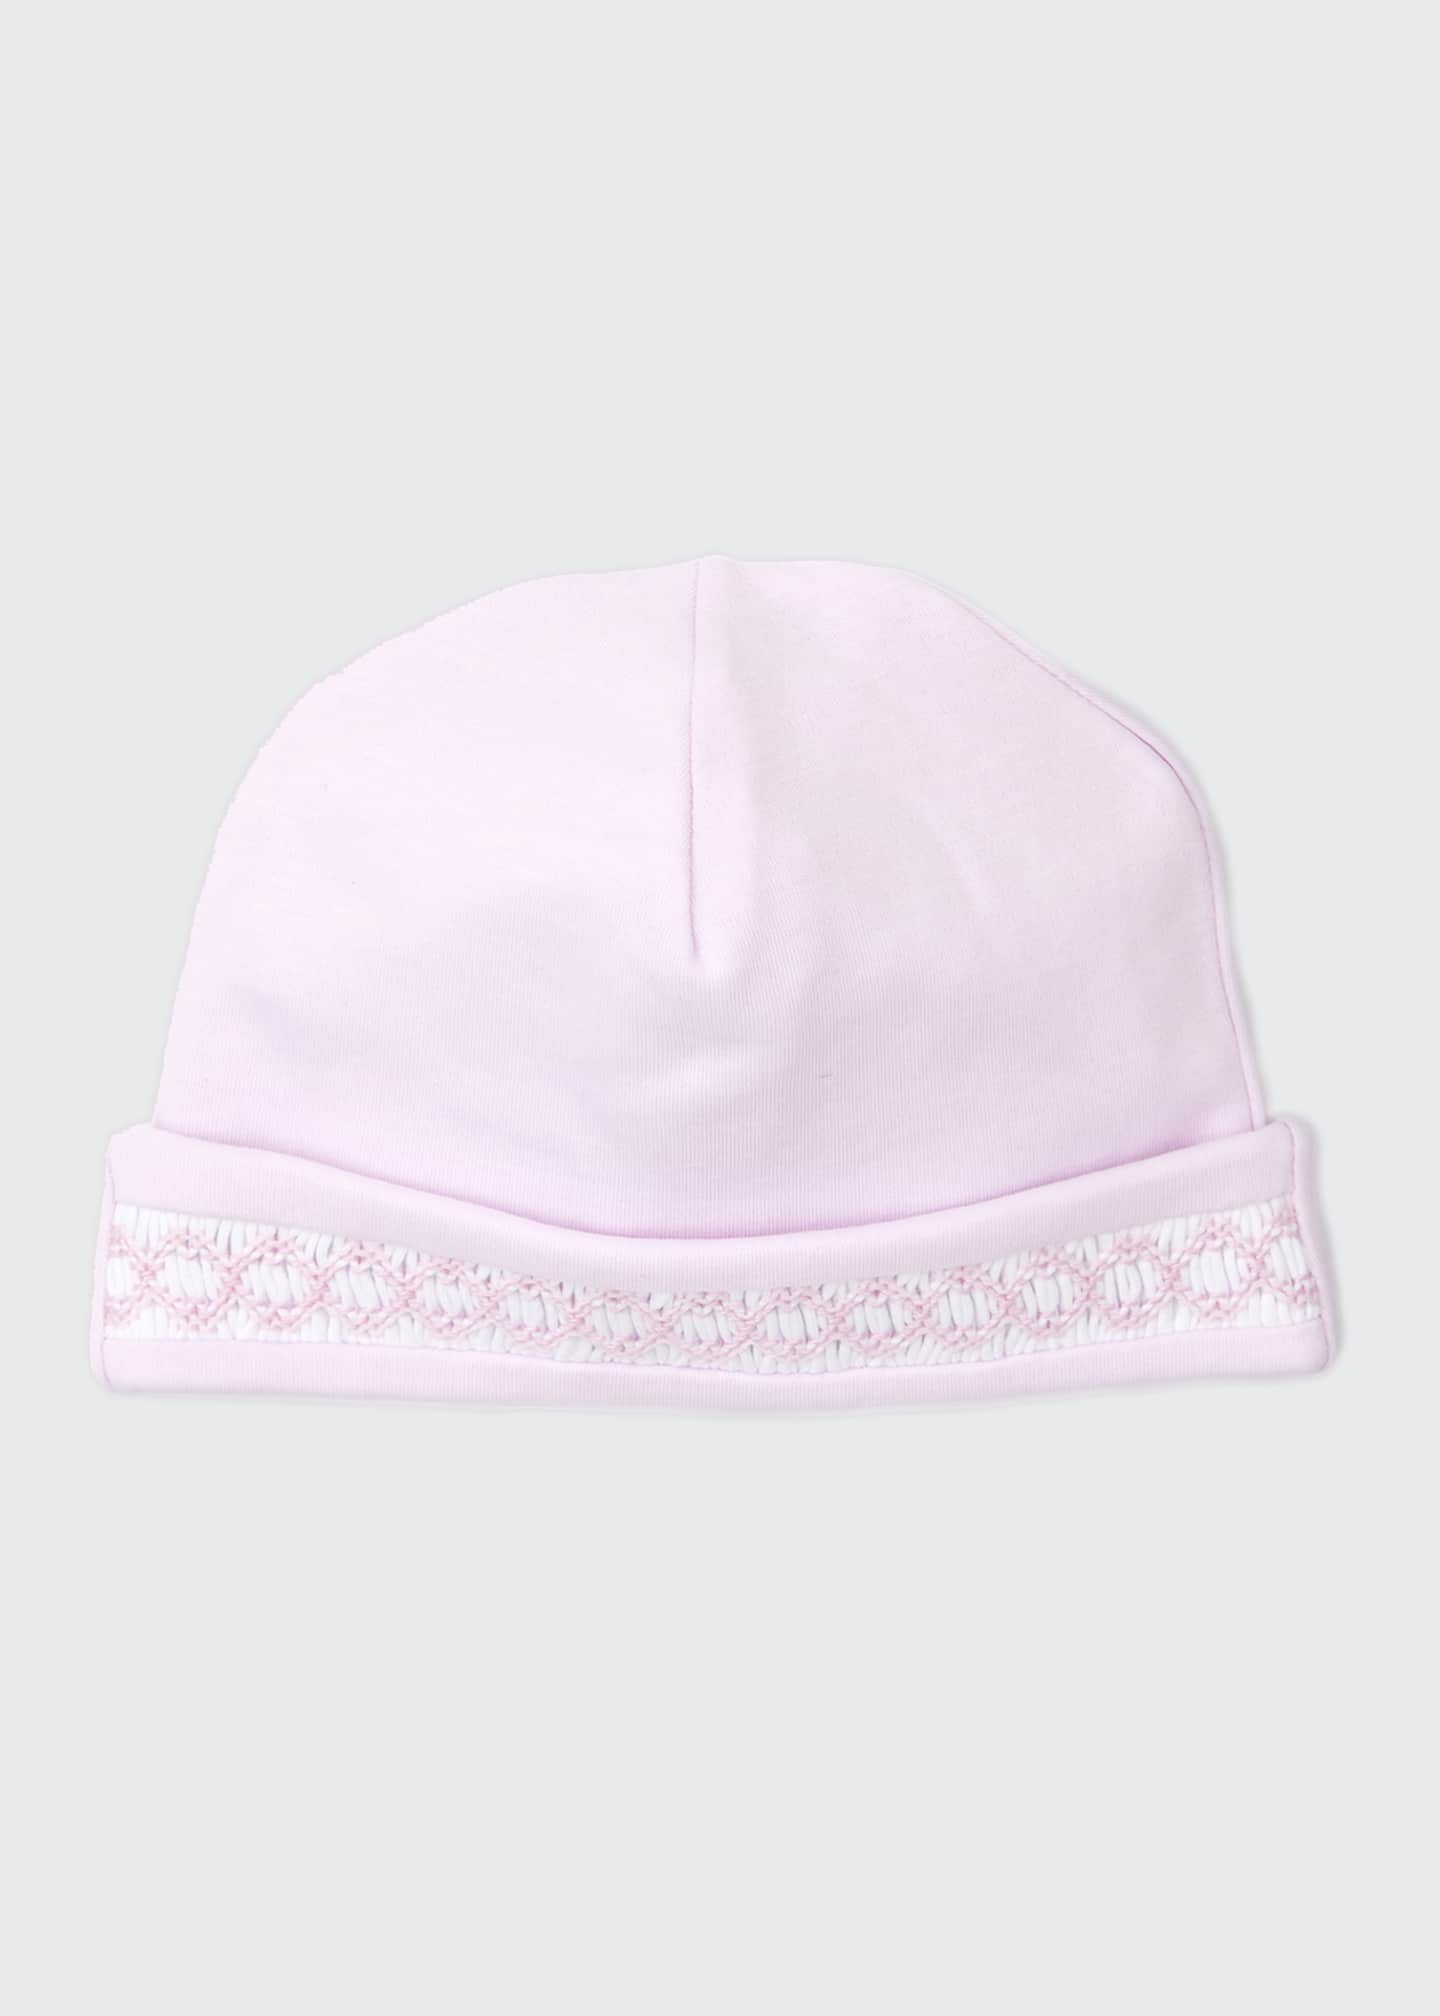 Image 1 of 3: CLB Fall Pink Pima Baby Hat